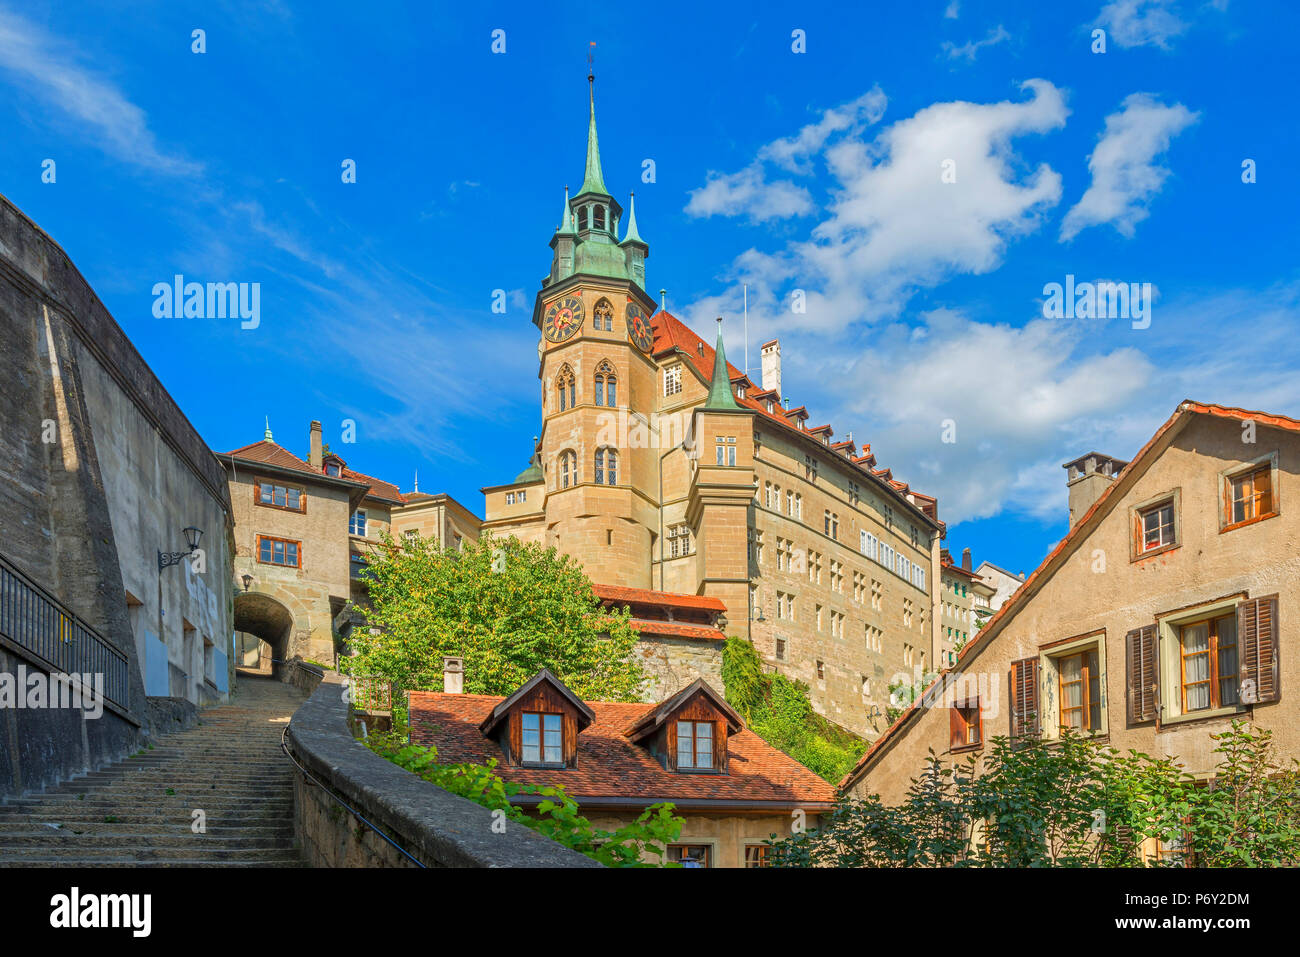 Town hall, Fribourg, Fribourg, Switzerland - Stock Image